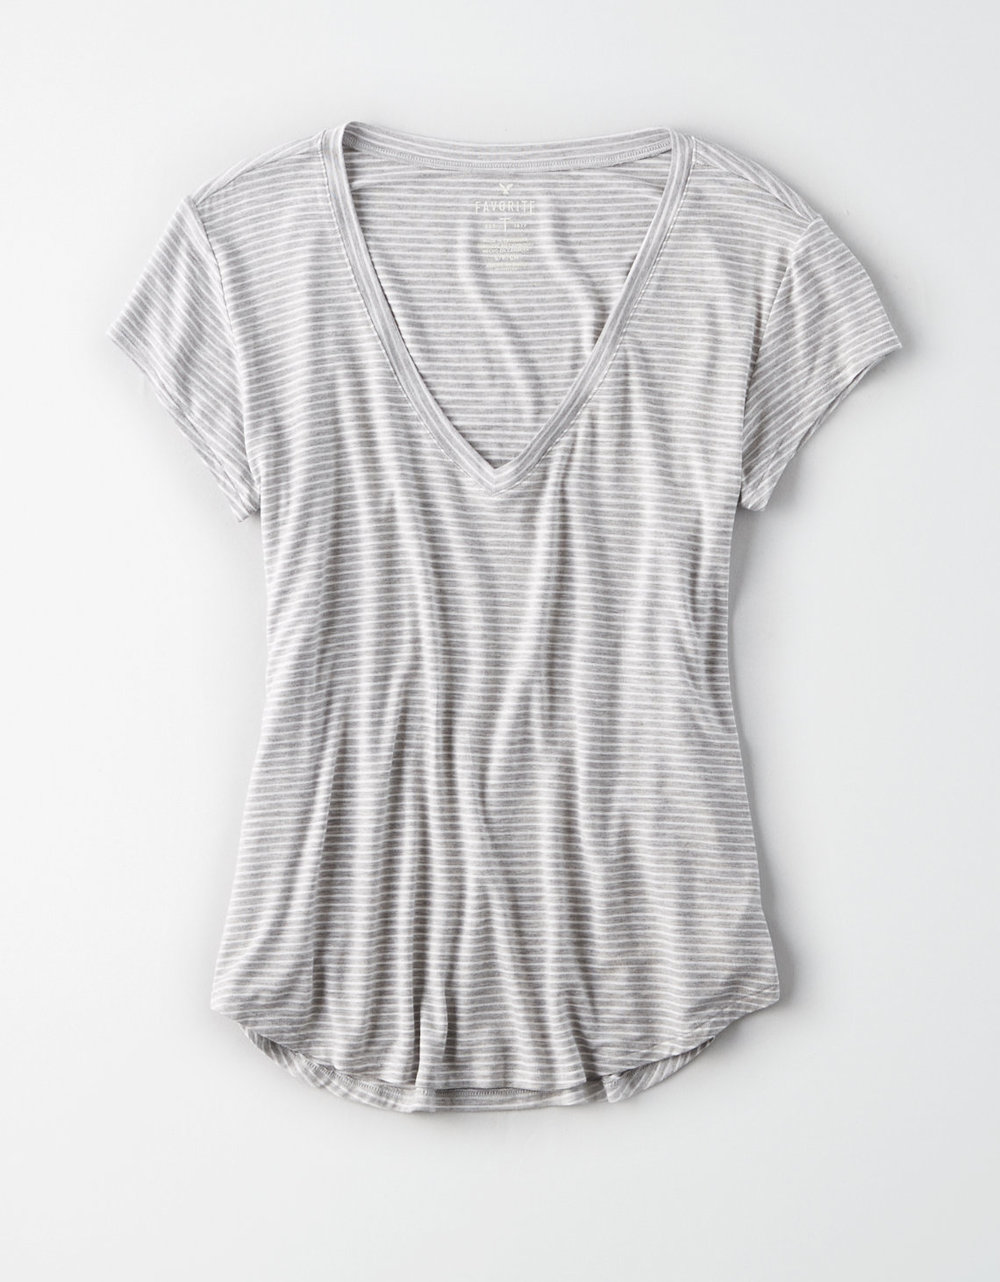 AE SOFT & SEXY STRIPED TEE $19.99